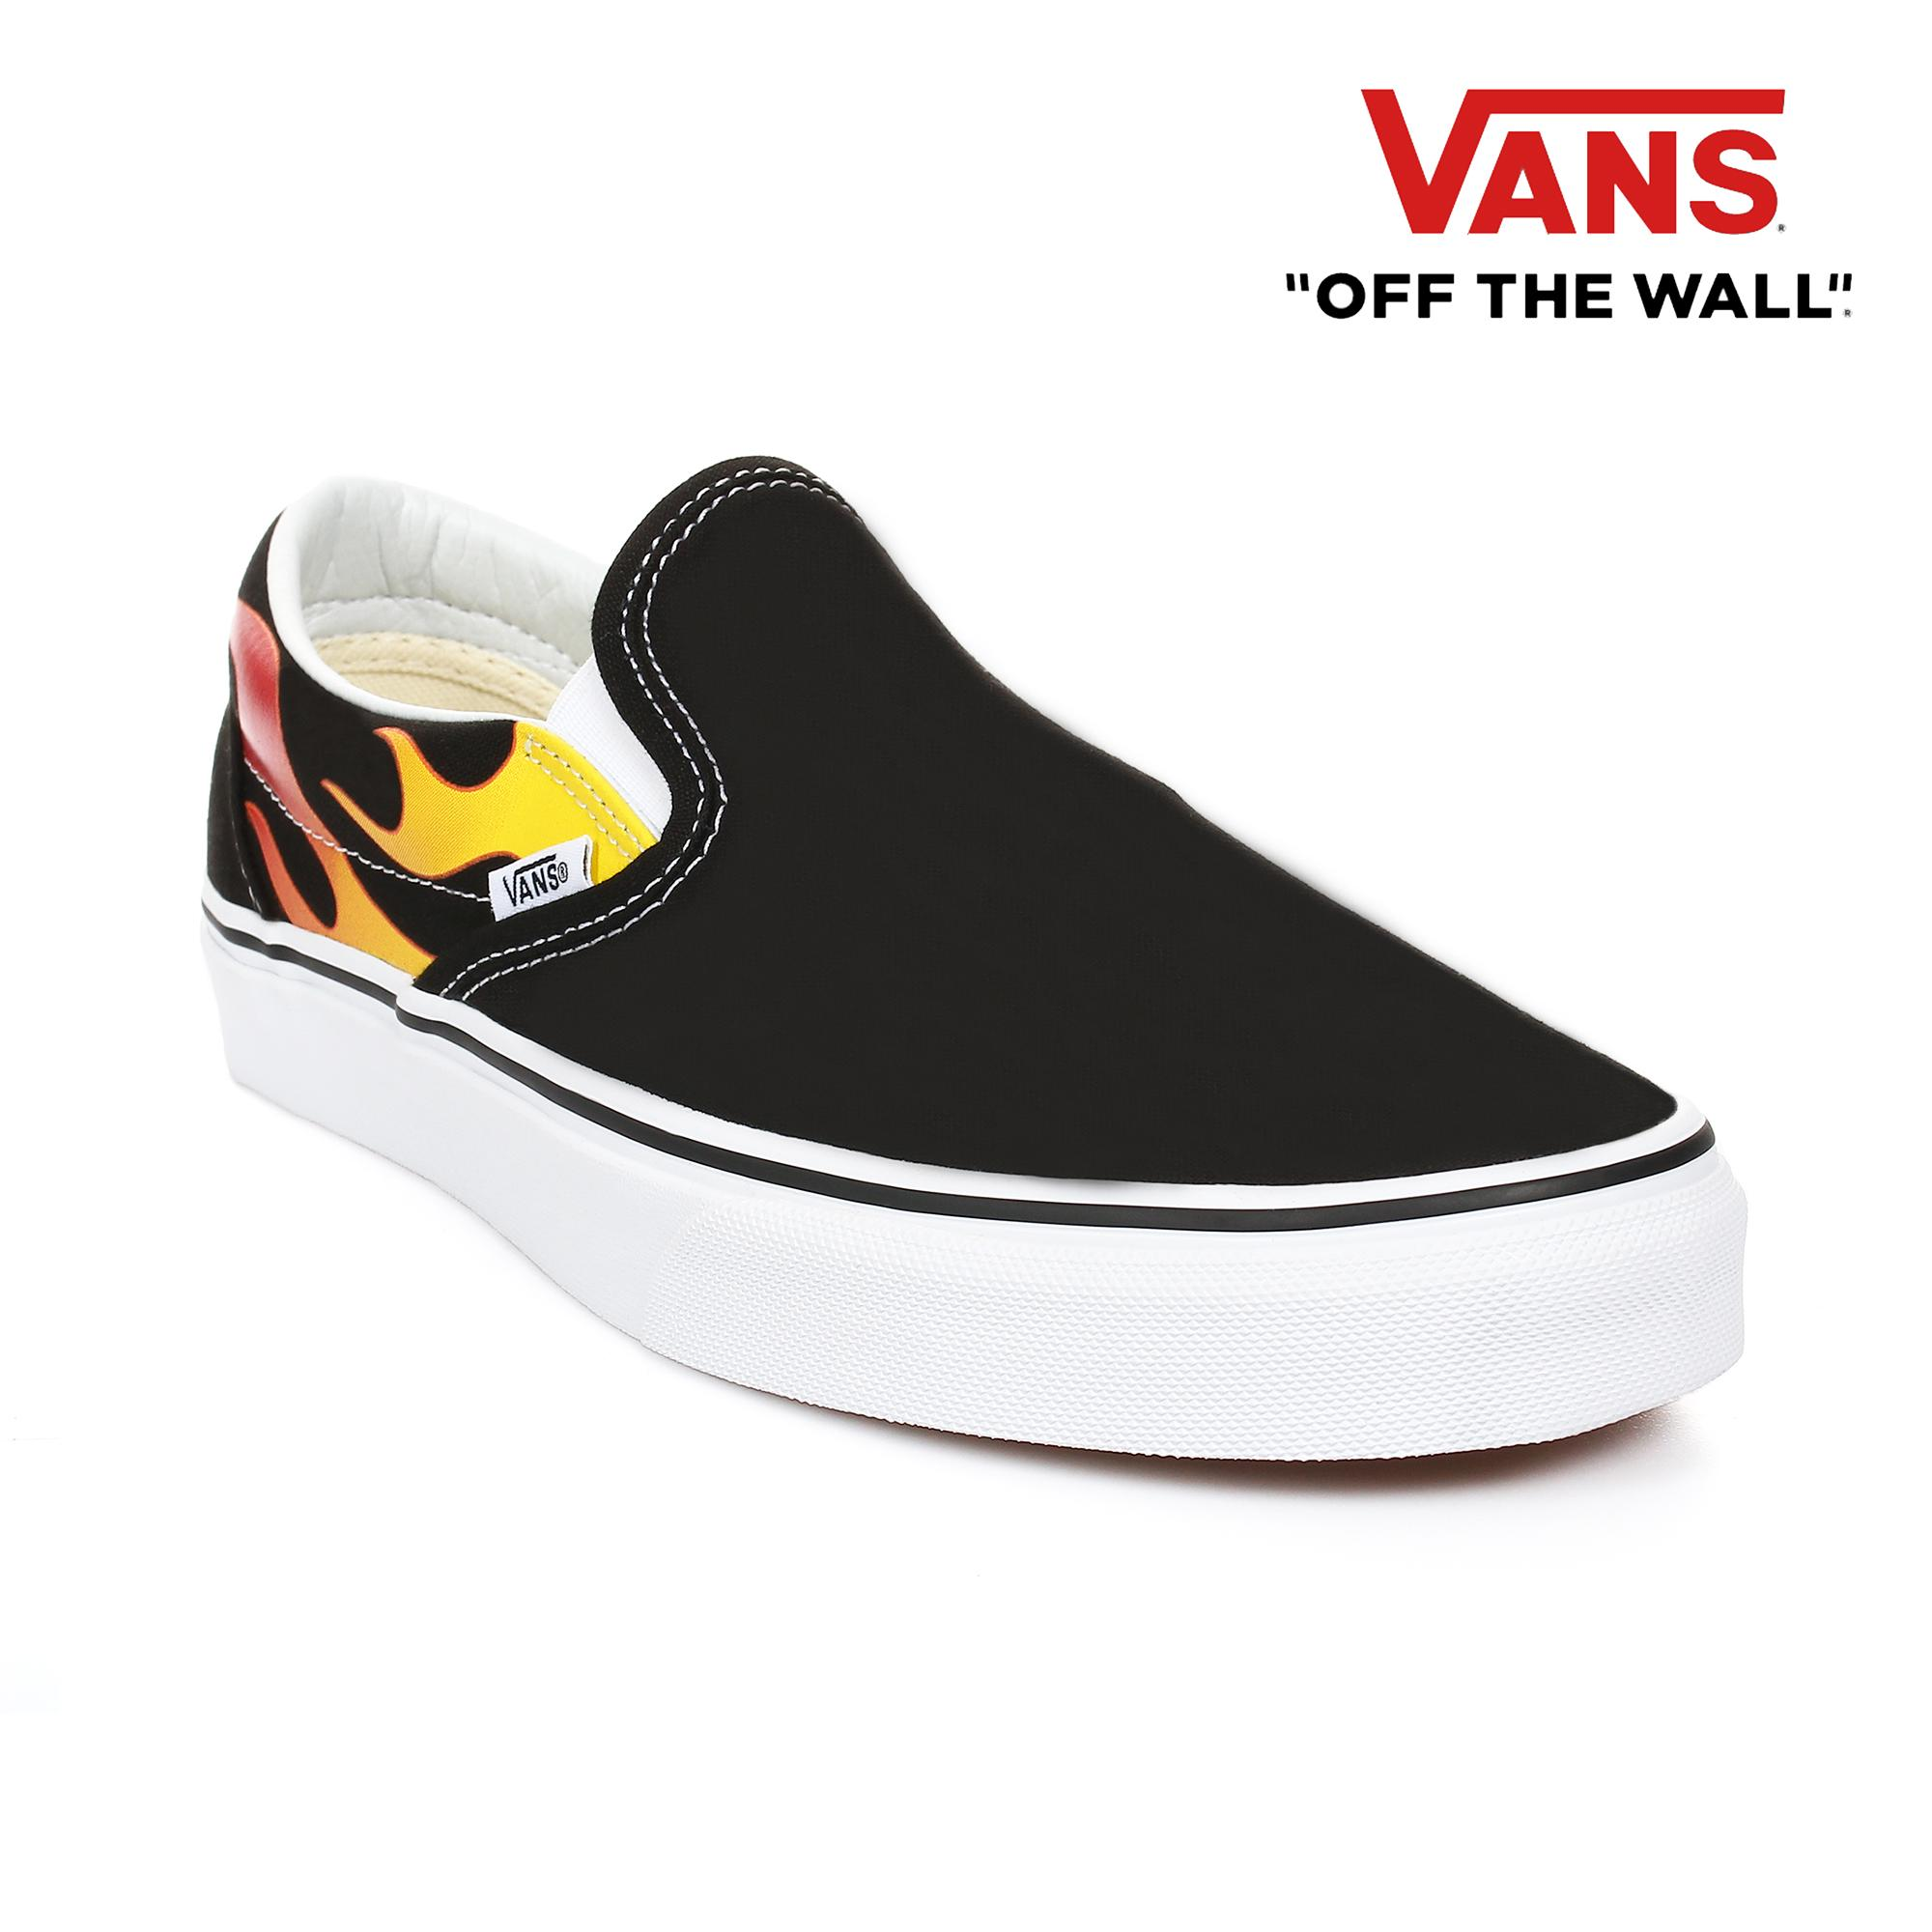 Vans Shoes for Men Philippines - Vans Men s Shoes for sale - prices ... 28c67897b